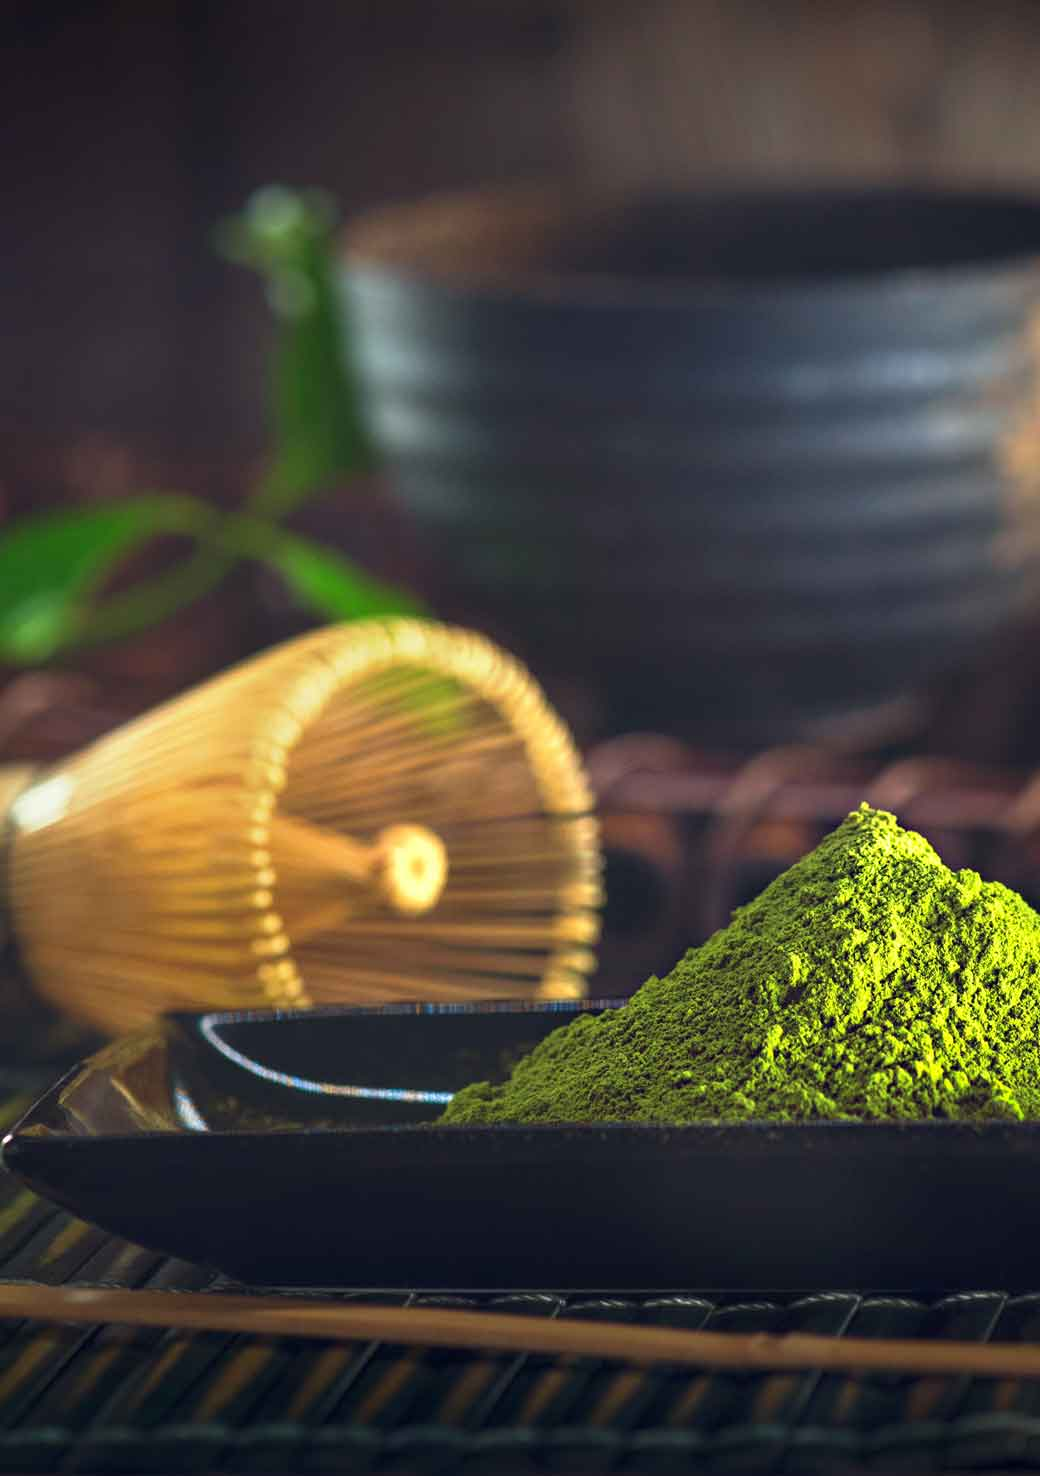 Matcha, bamboo whisk and ceramic tea bowl